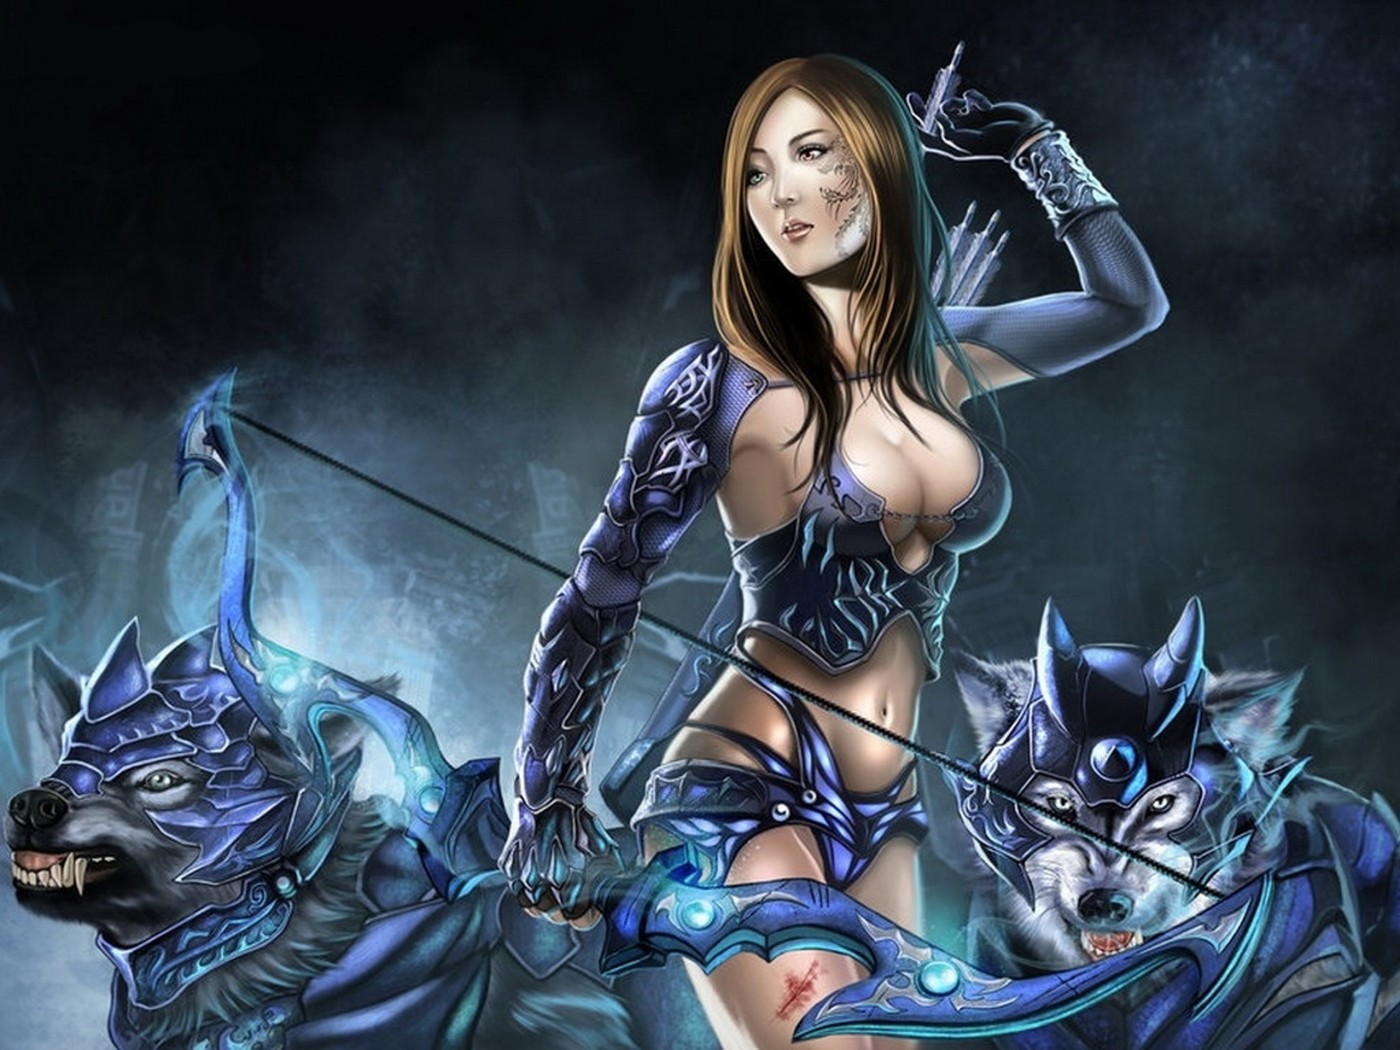 Fantasy archers female topless erotica funny porn star